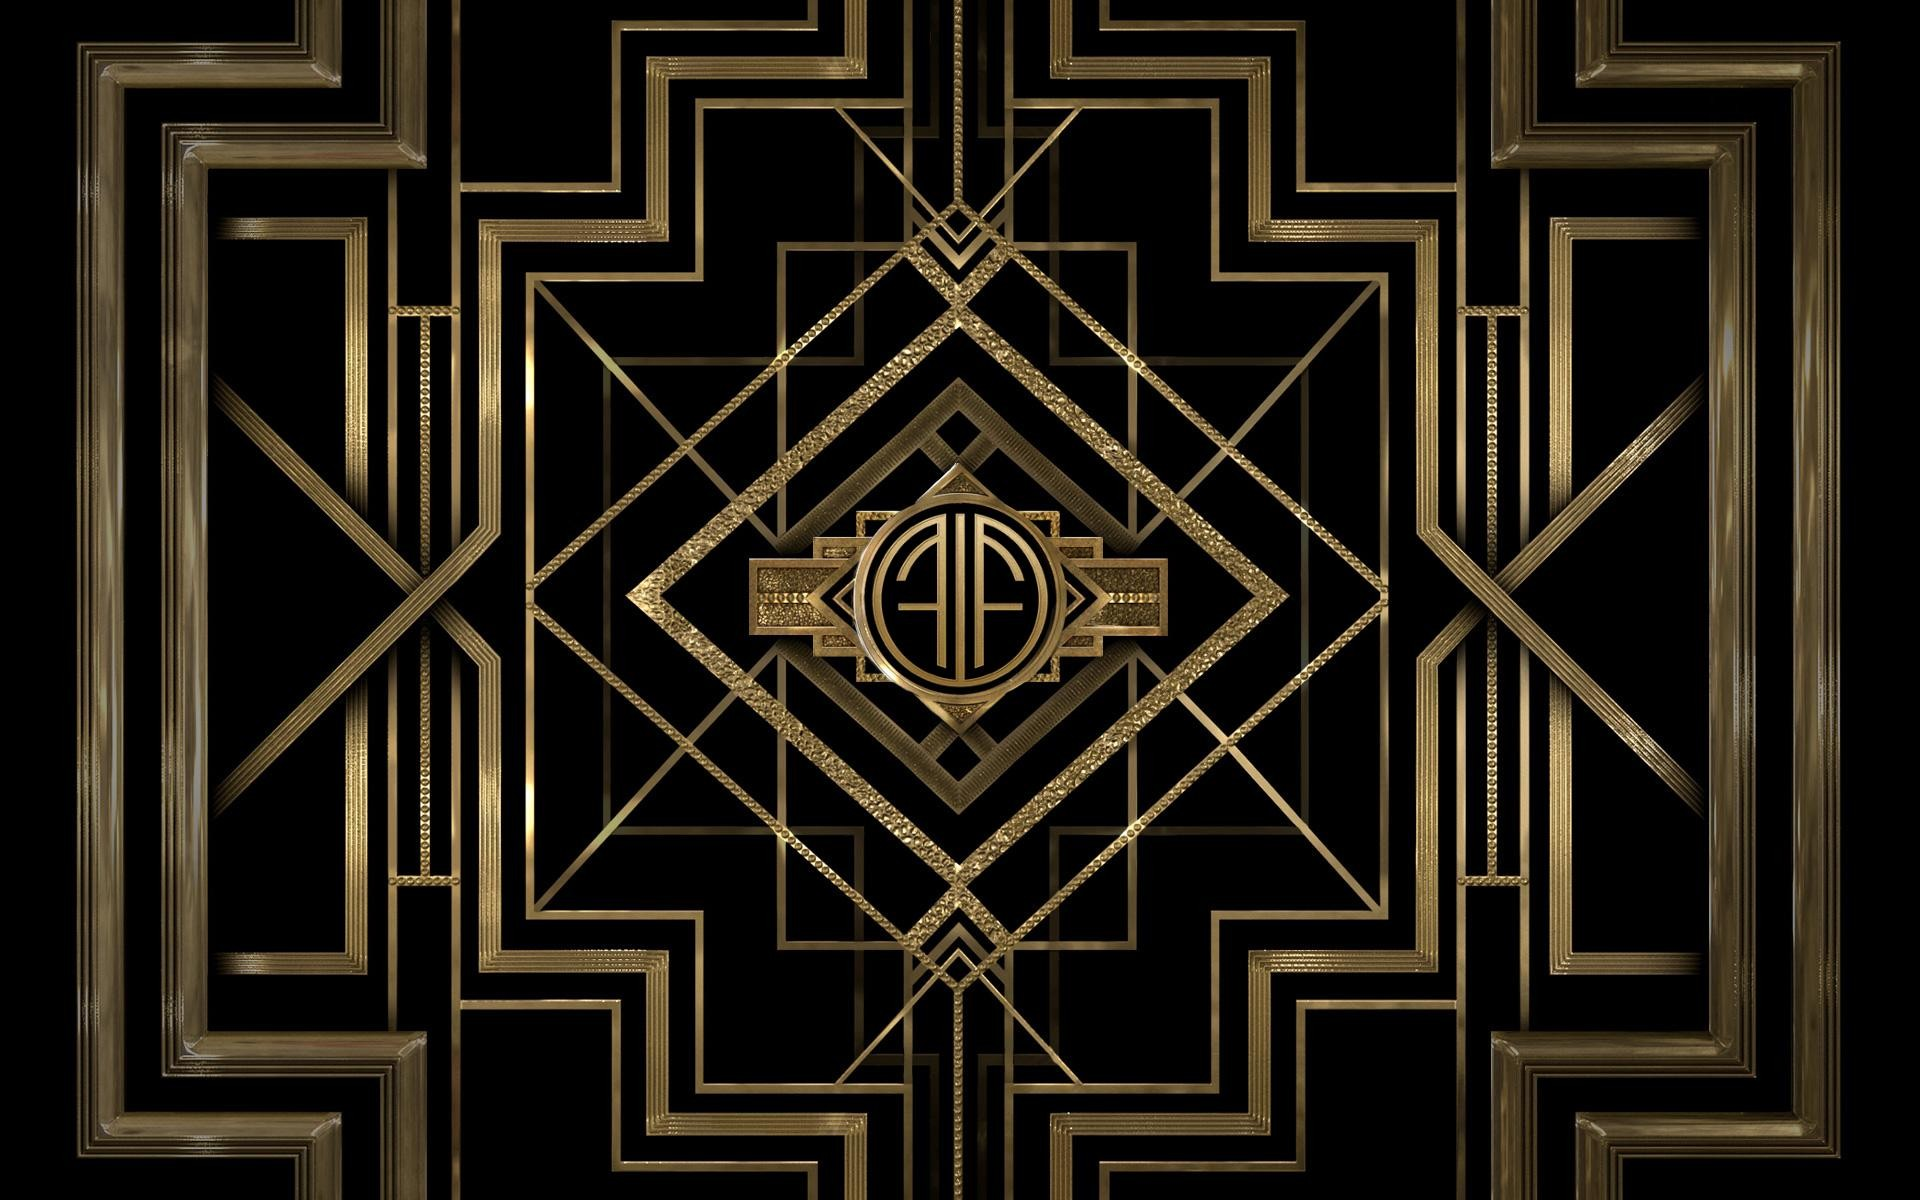 Art deco wallpaper 6583 1920x1200 px for Interieur art deco